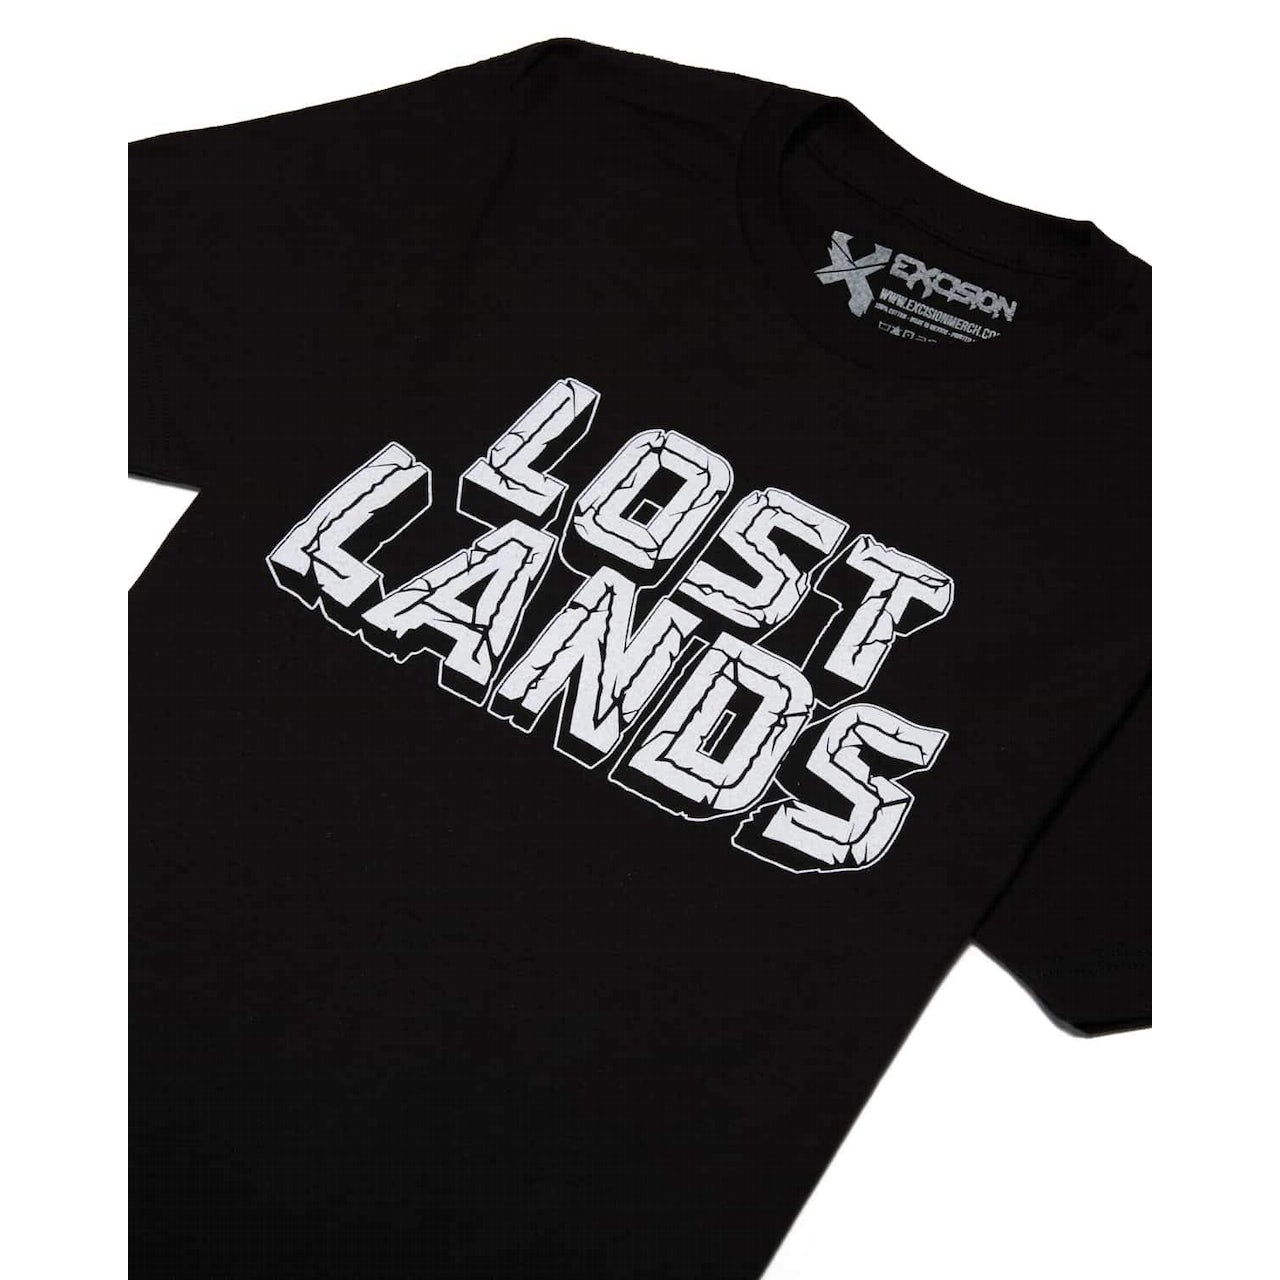 4ca7524a3 Excision Official Lost Lands 2018 Lineup T-Shirt (Black/White). Touch to  zoom